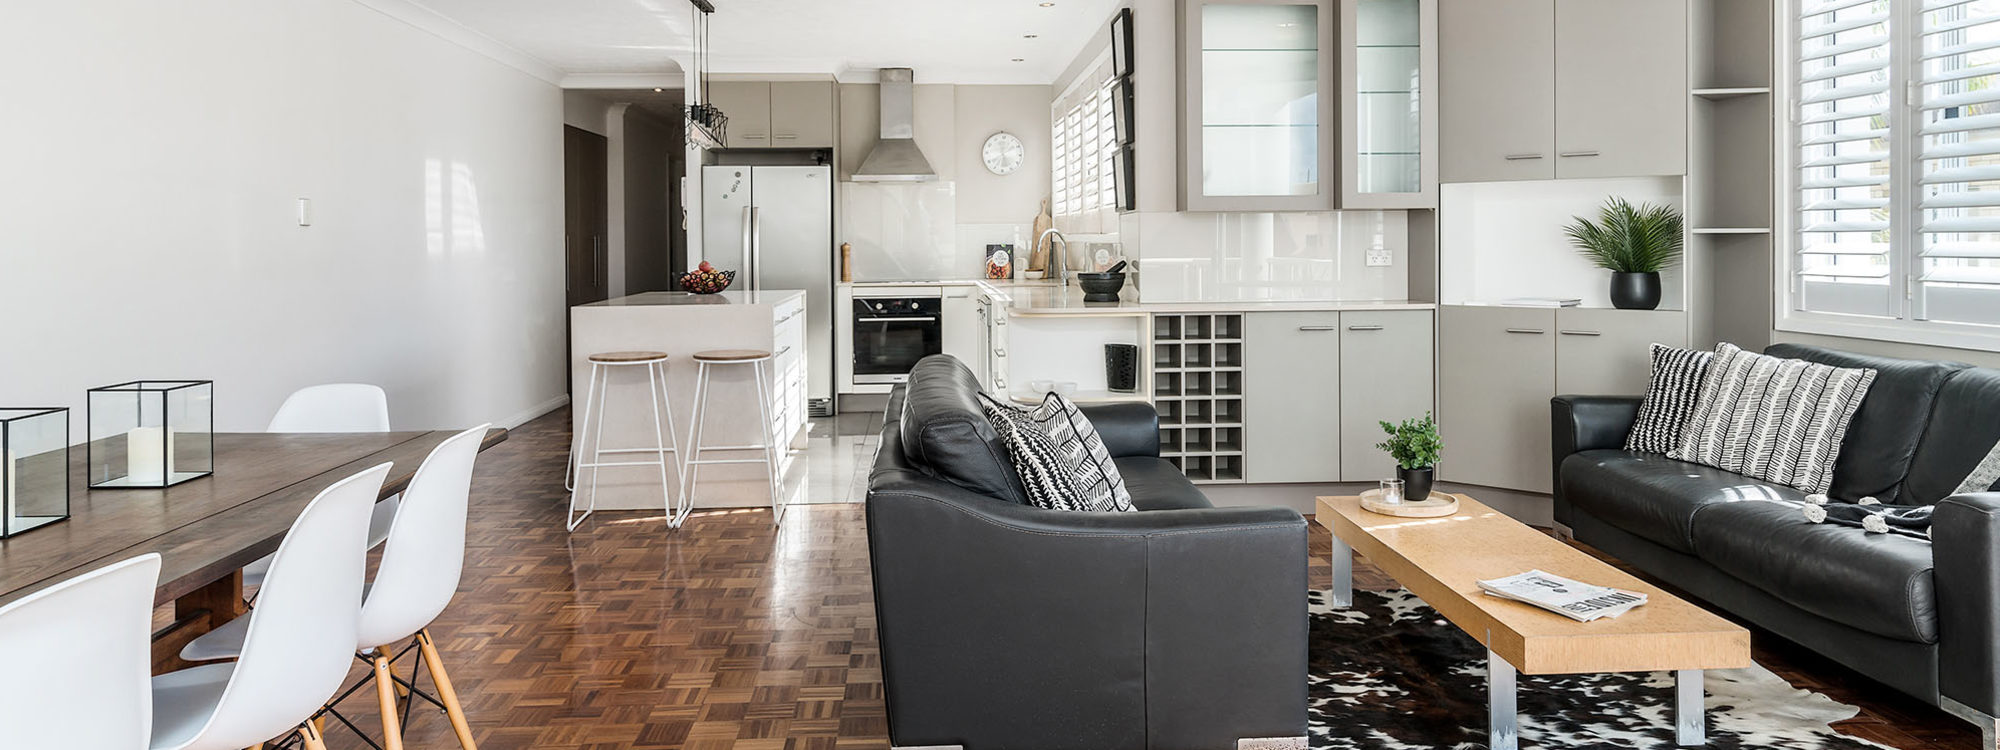 Lazy Dayz - Surfers Paradise - Living Area Towards Kitchen